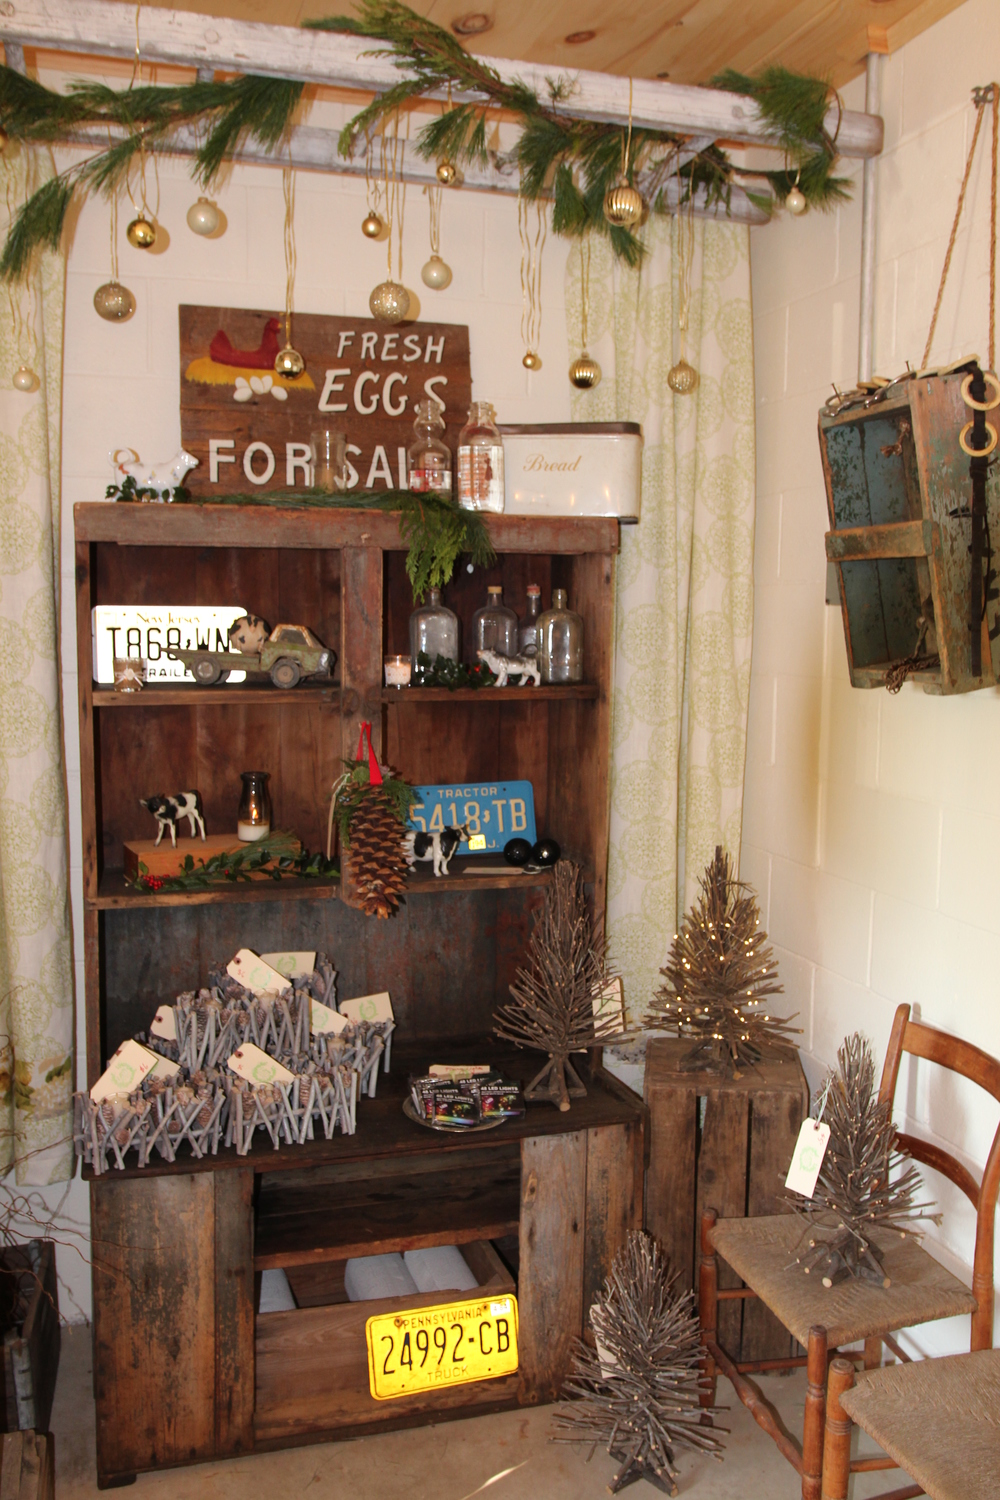 This is part of a revolving display area at A Milkhouse Party - our inner gift shop owner is being confined to this corner, and we are going to take complete advantage!